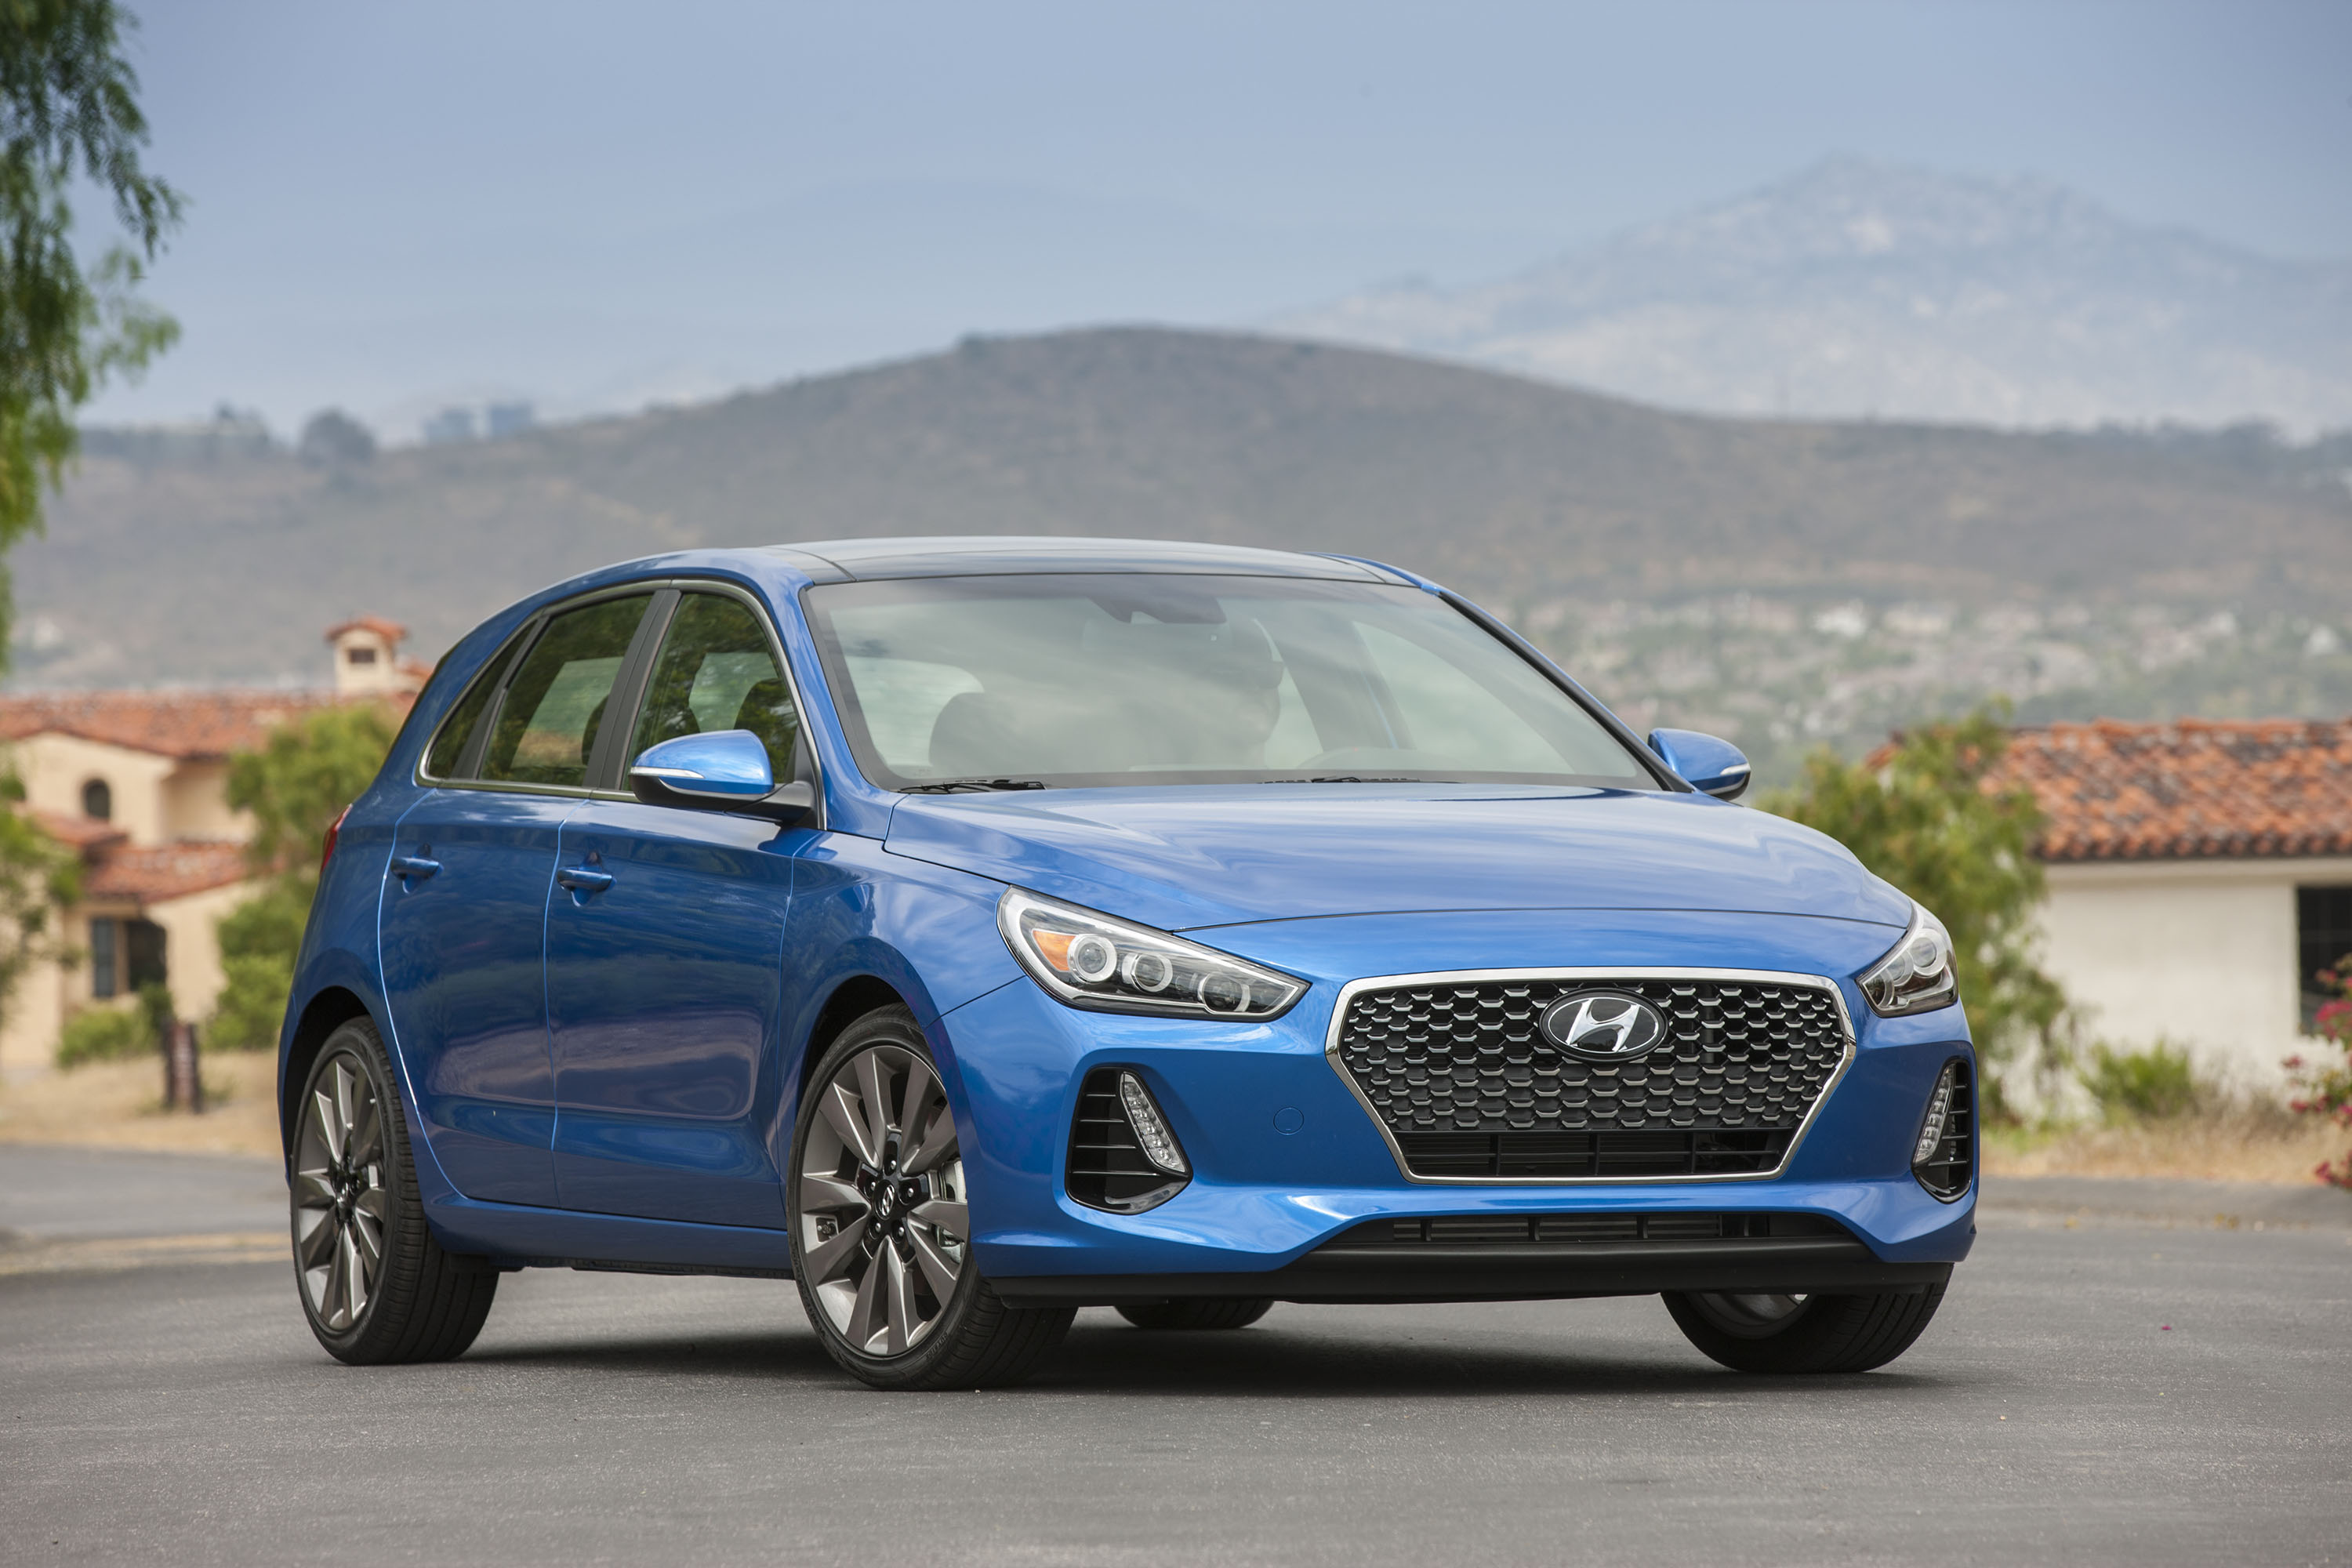 elantra hyundai top gt speed cars review